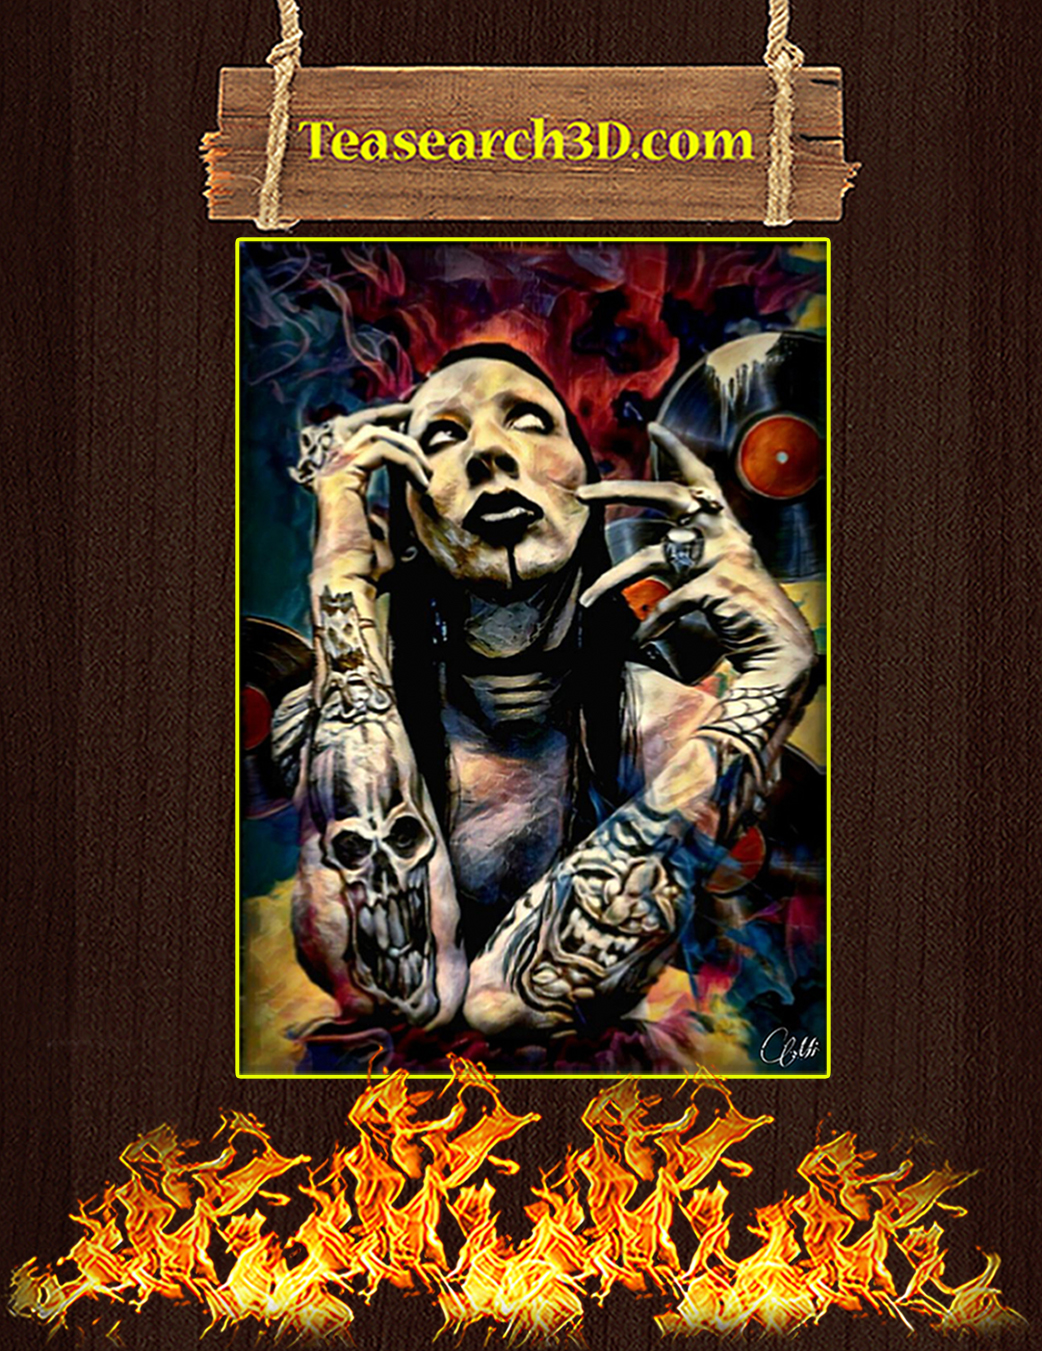 Marilyn manson poster A1